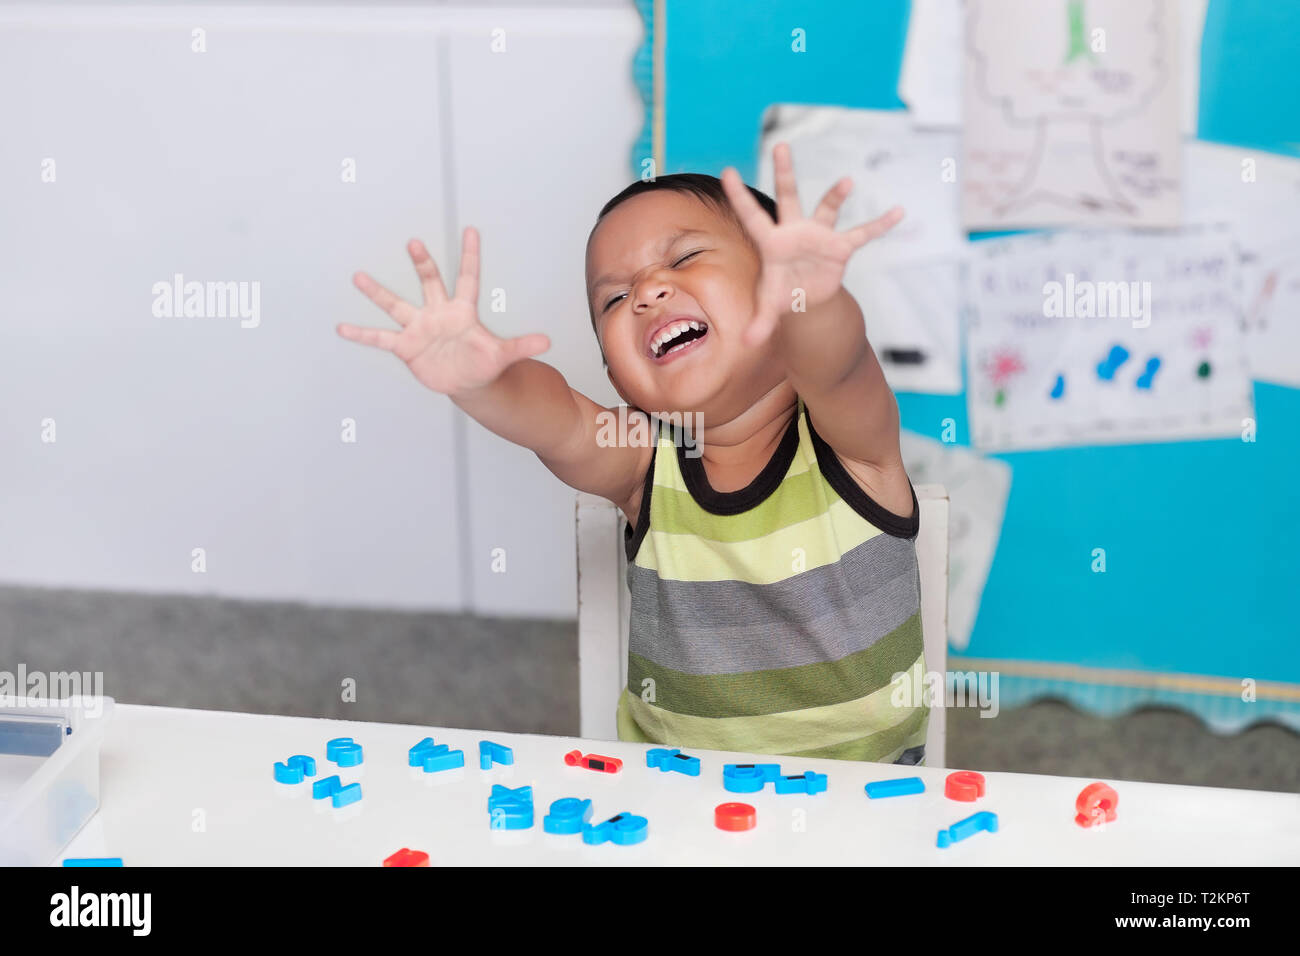 Hispanic young boy expressing disruptive or disorderly behavior in a classroom with alphabet letter manipulatives on the desk. - Stock Image